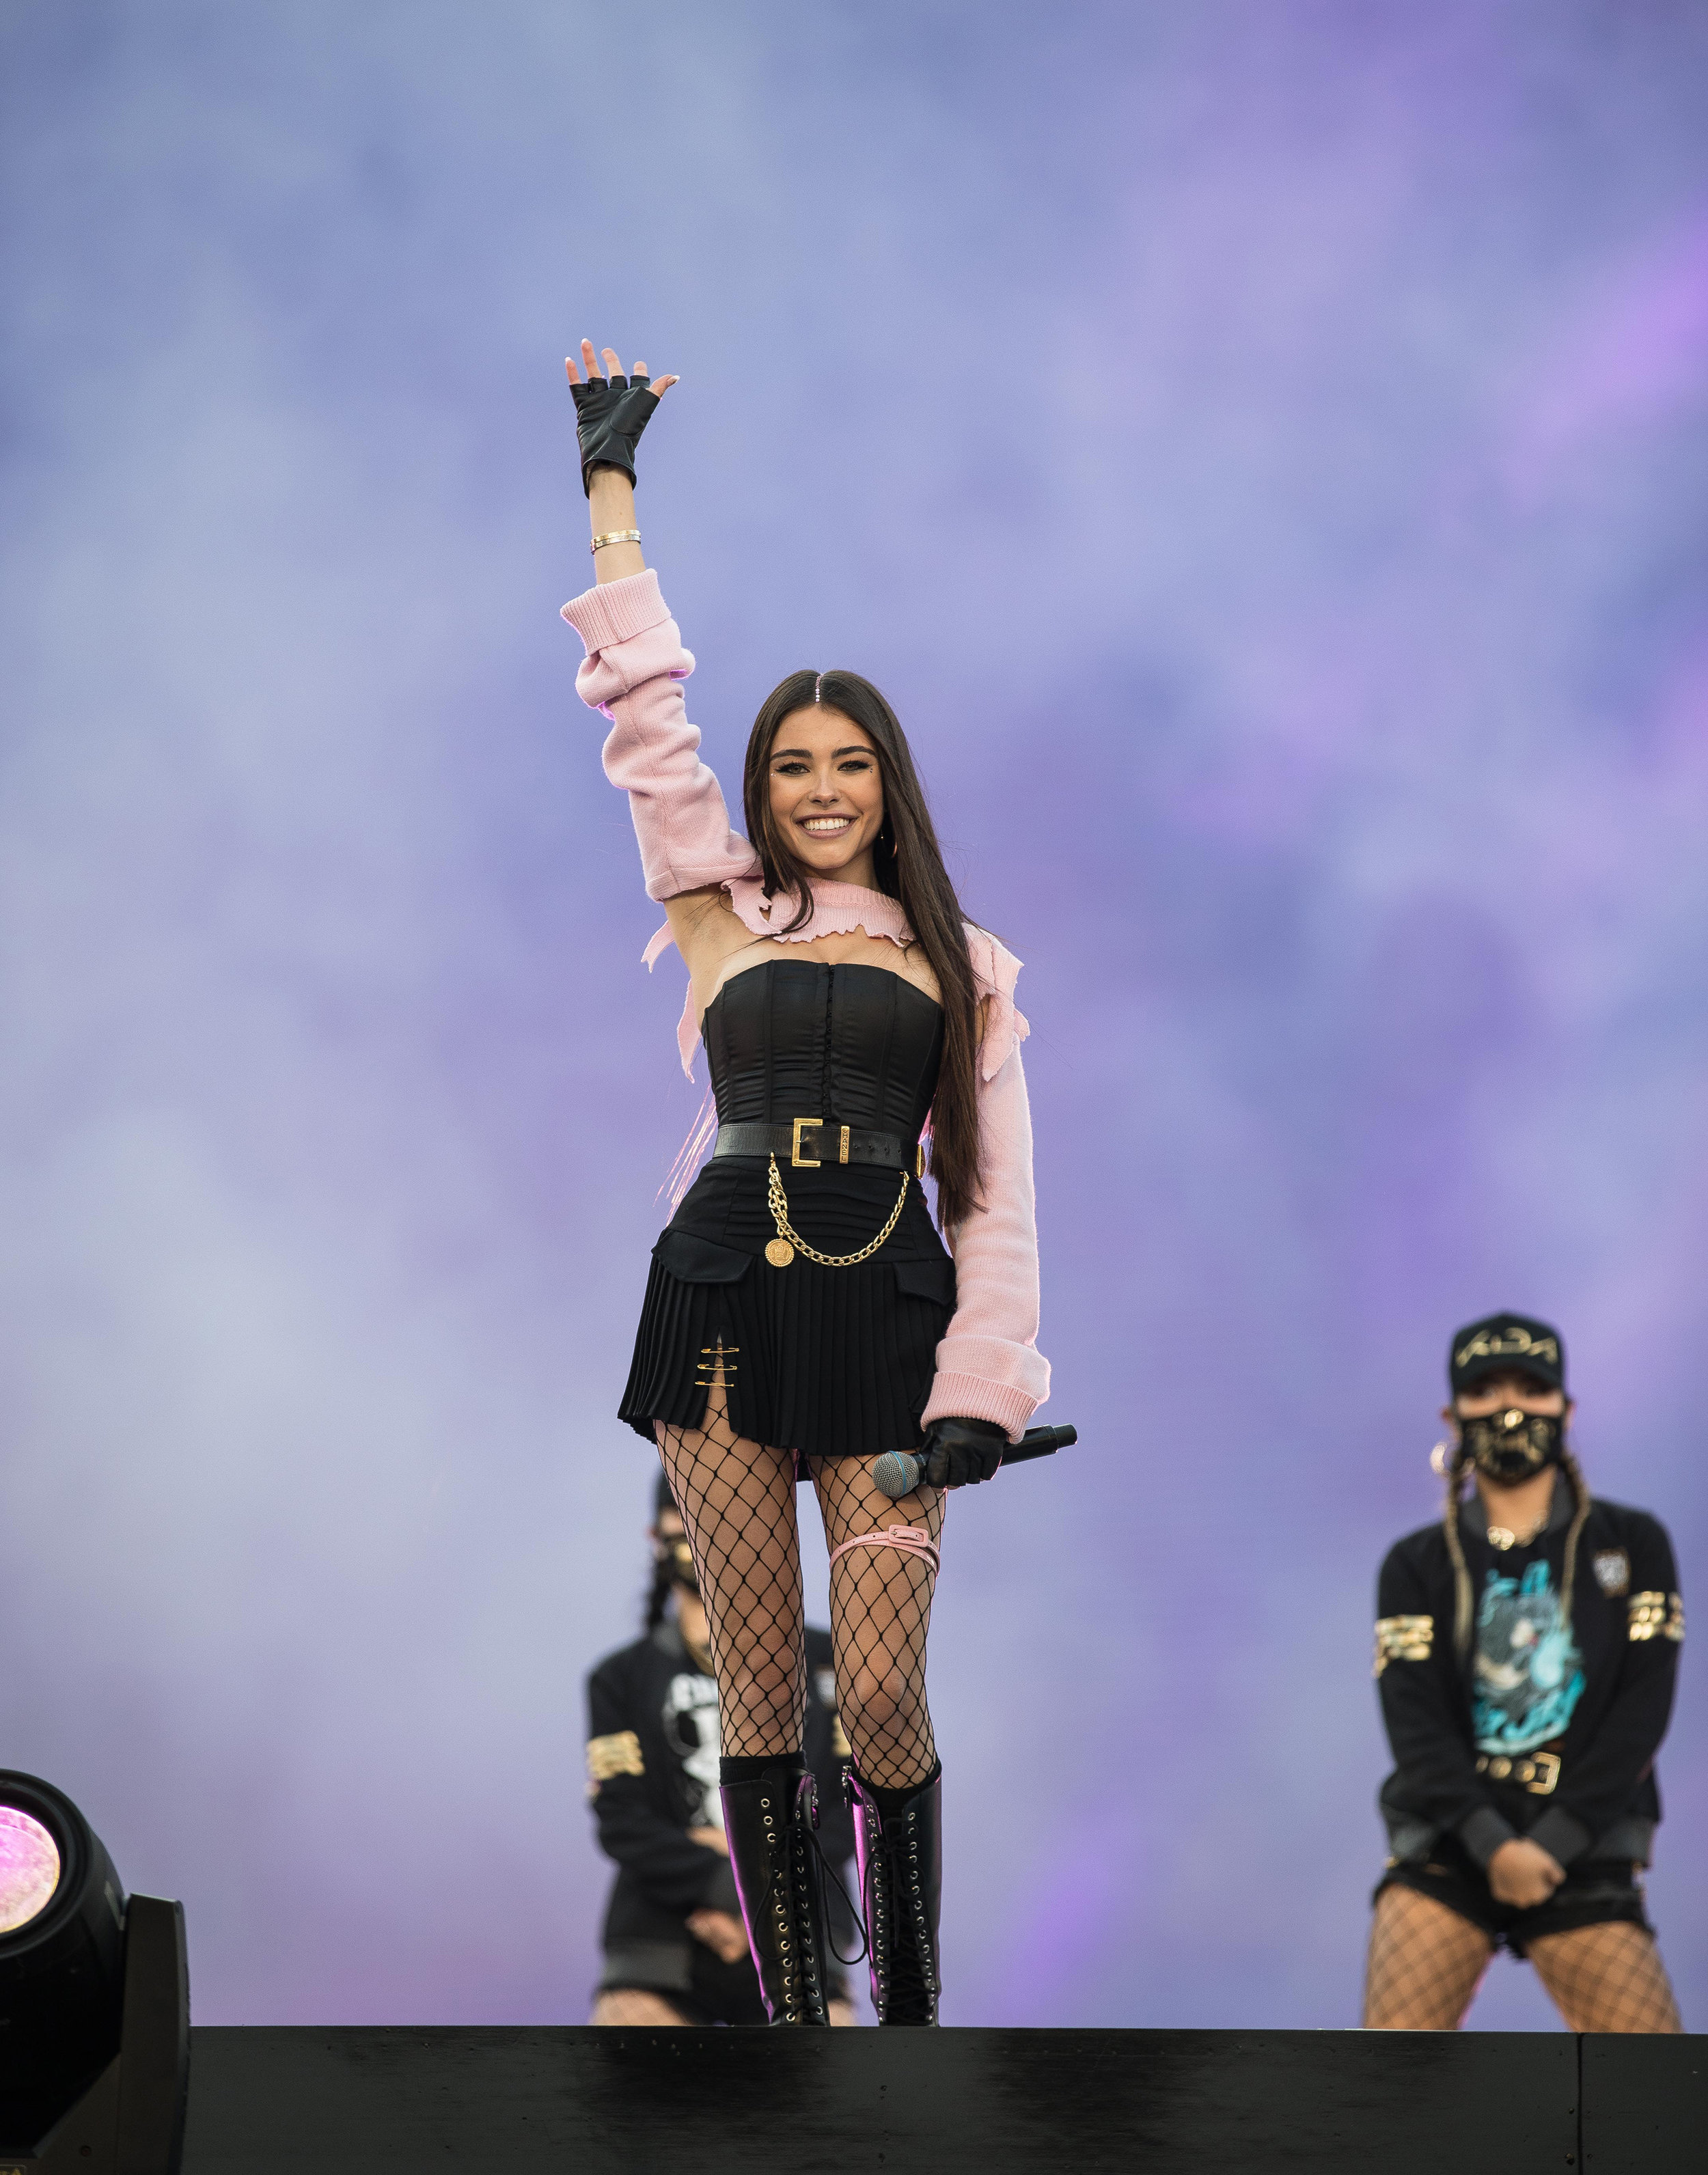 Madison Beer helps K/DA come to life during the Opening Ceremony at the 2018 League of Legends World Championship Finals sponsored by Mastercard on November 3, 2018 in Incheon, South Korea.  Photo by Hannah Smith/ESPAT Media for Mastercard